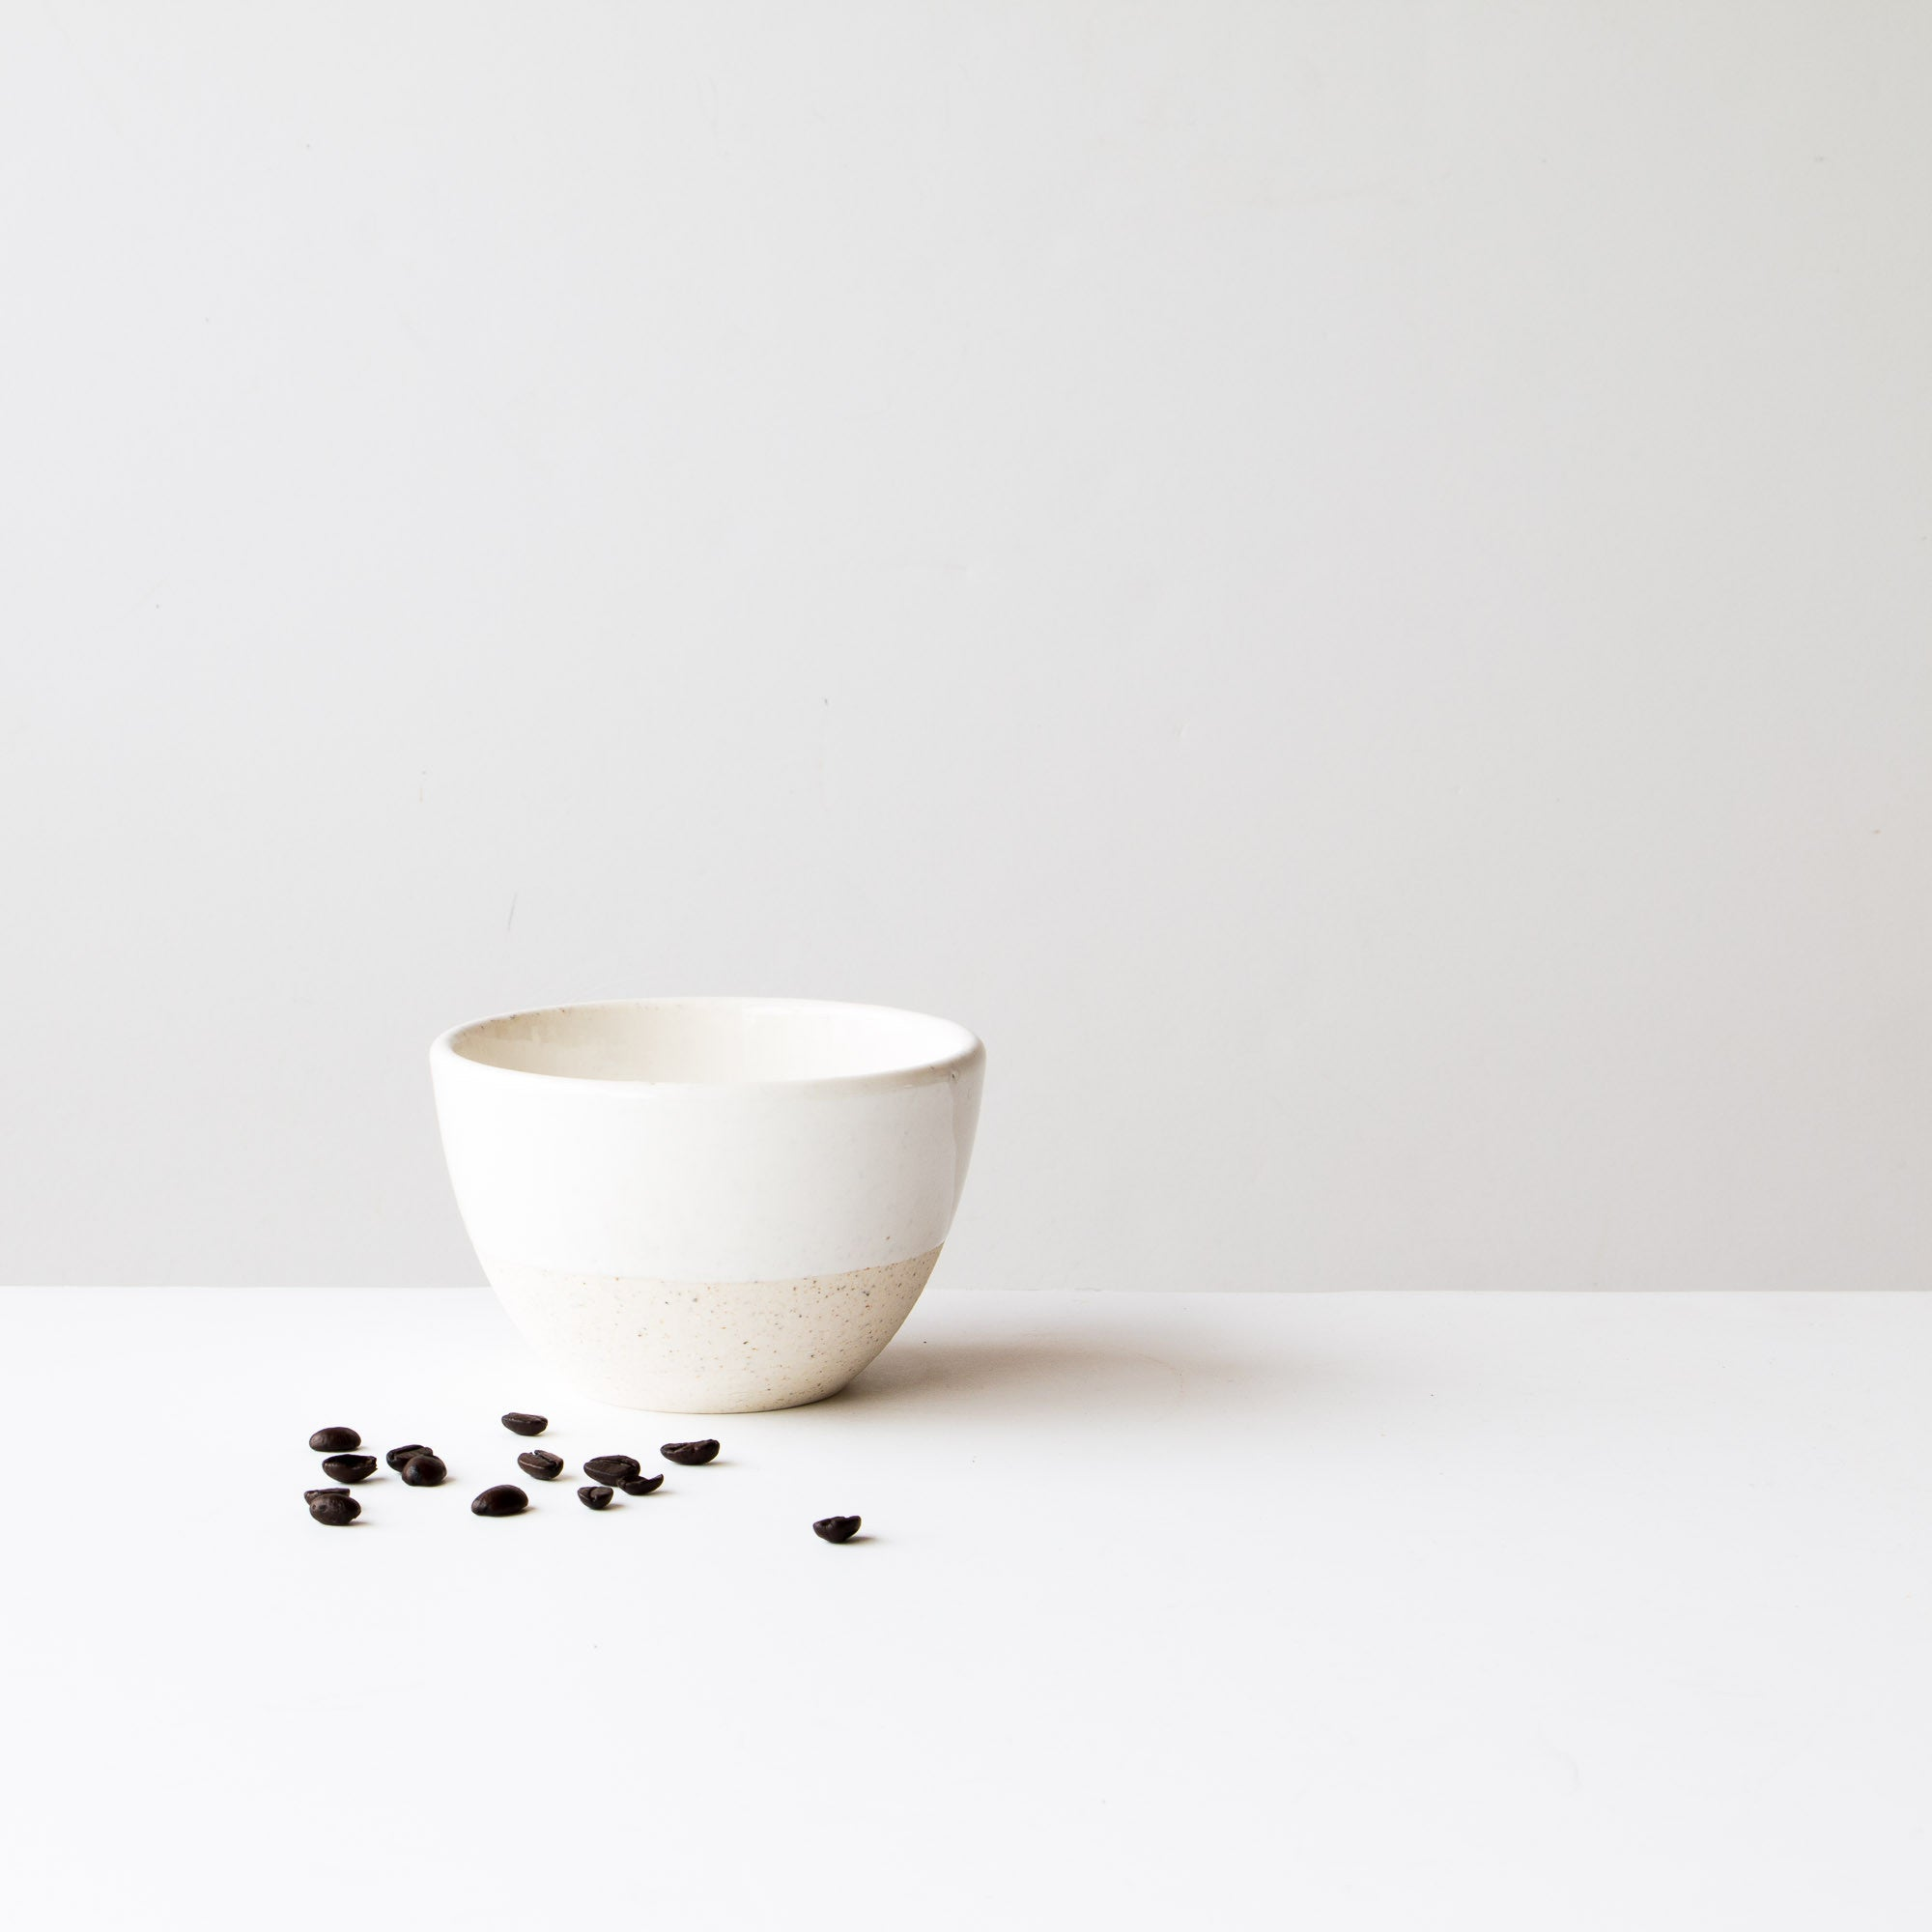 Latté Ceramic Bowl (Oatmeal Clay - Soft White Glaze) - Handmade in Quebec